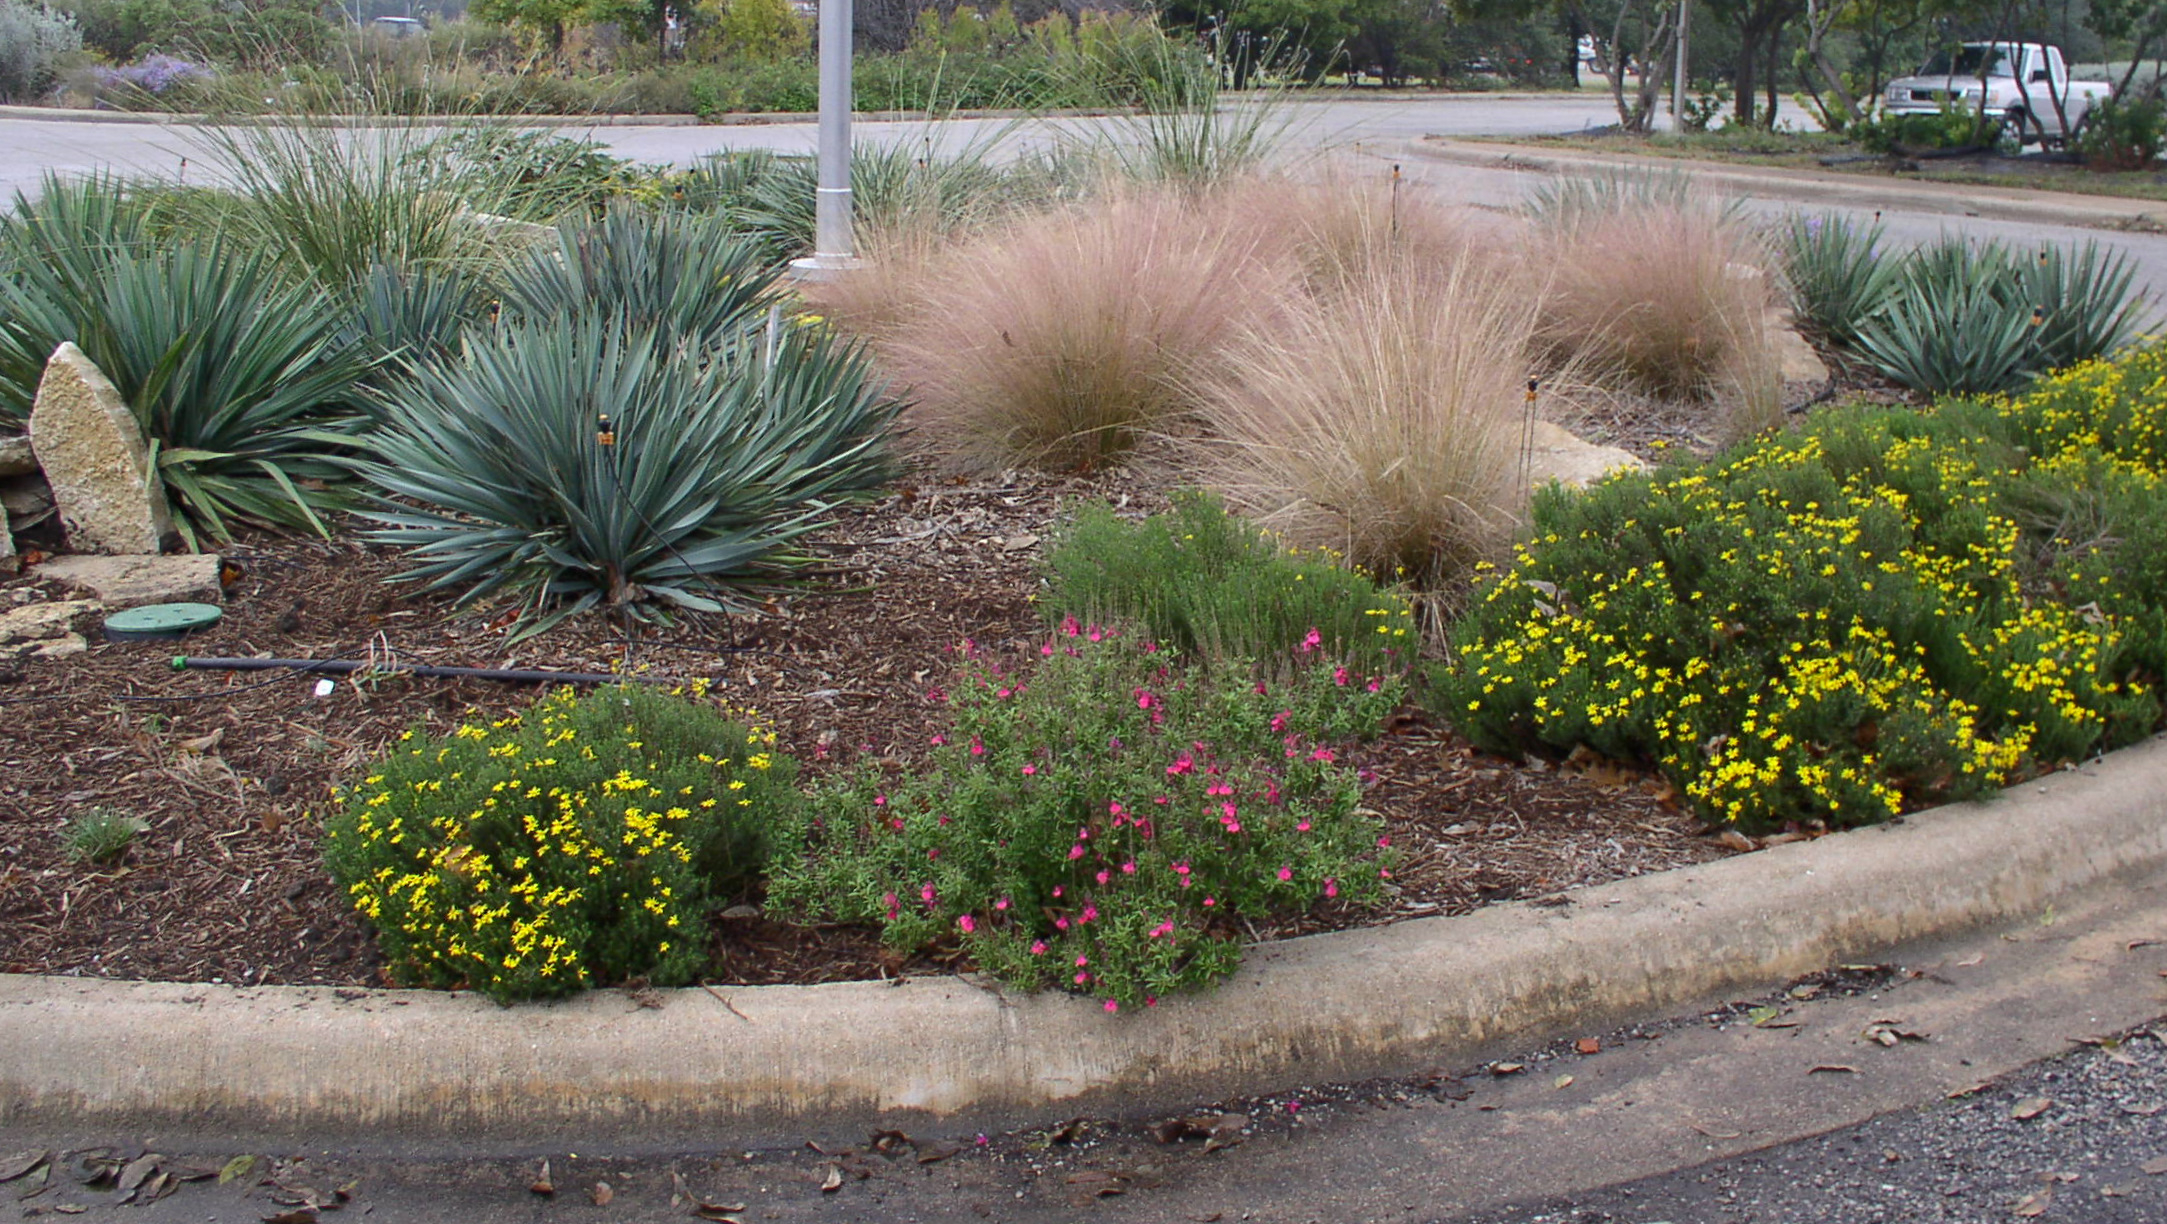 Native bunchgrass in the landscape for Grass tree garden designs